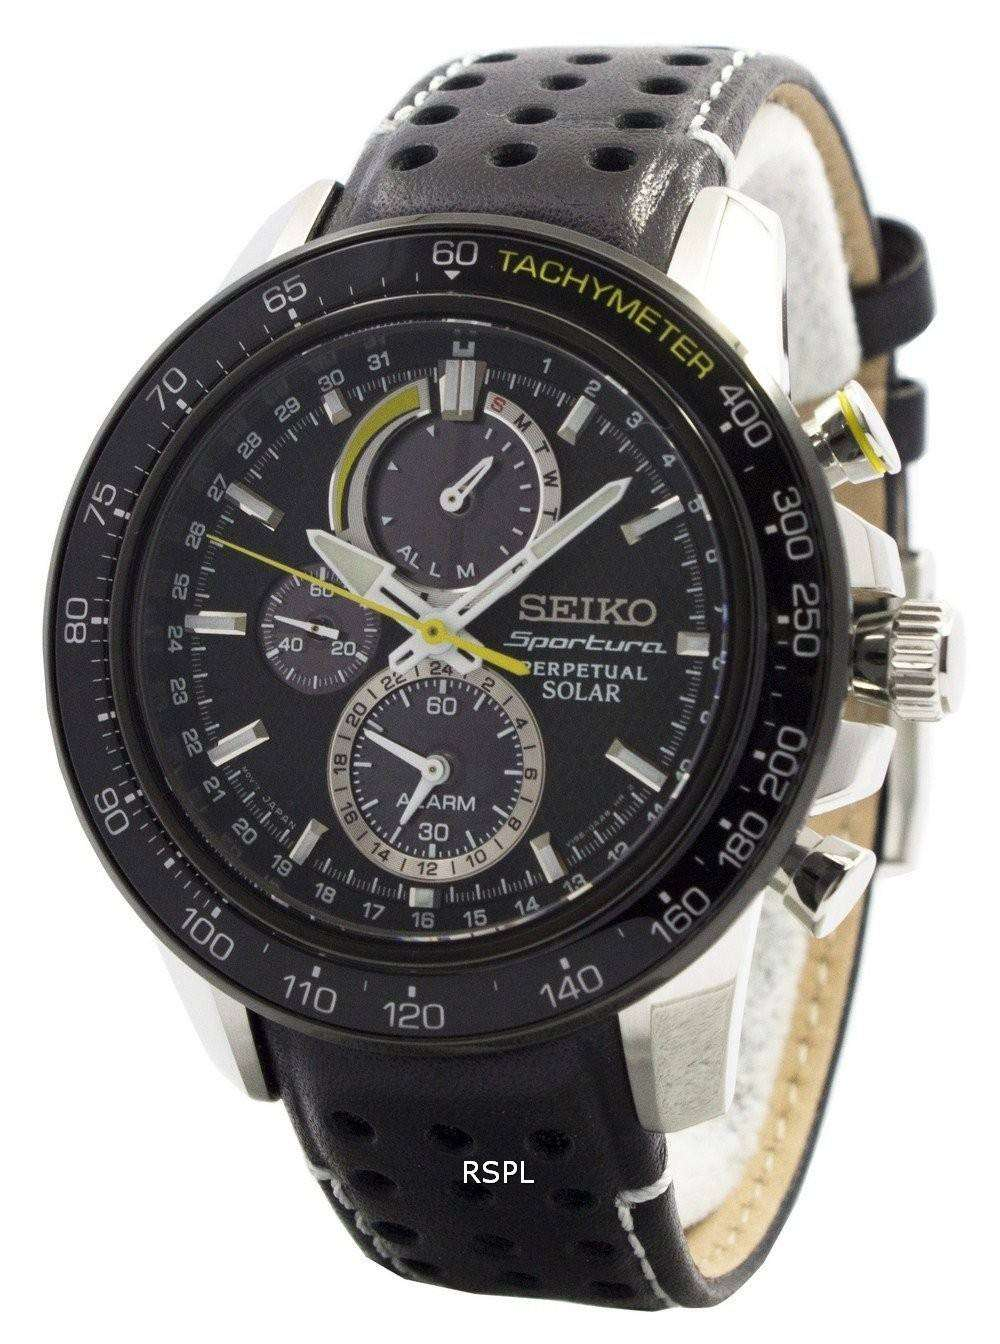 seiko sportura solar chronograph perpetual ssc361p1. Black Bedroom Furniture Sets. Home Design Ideas